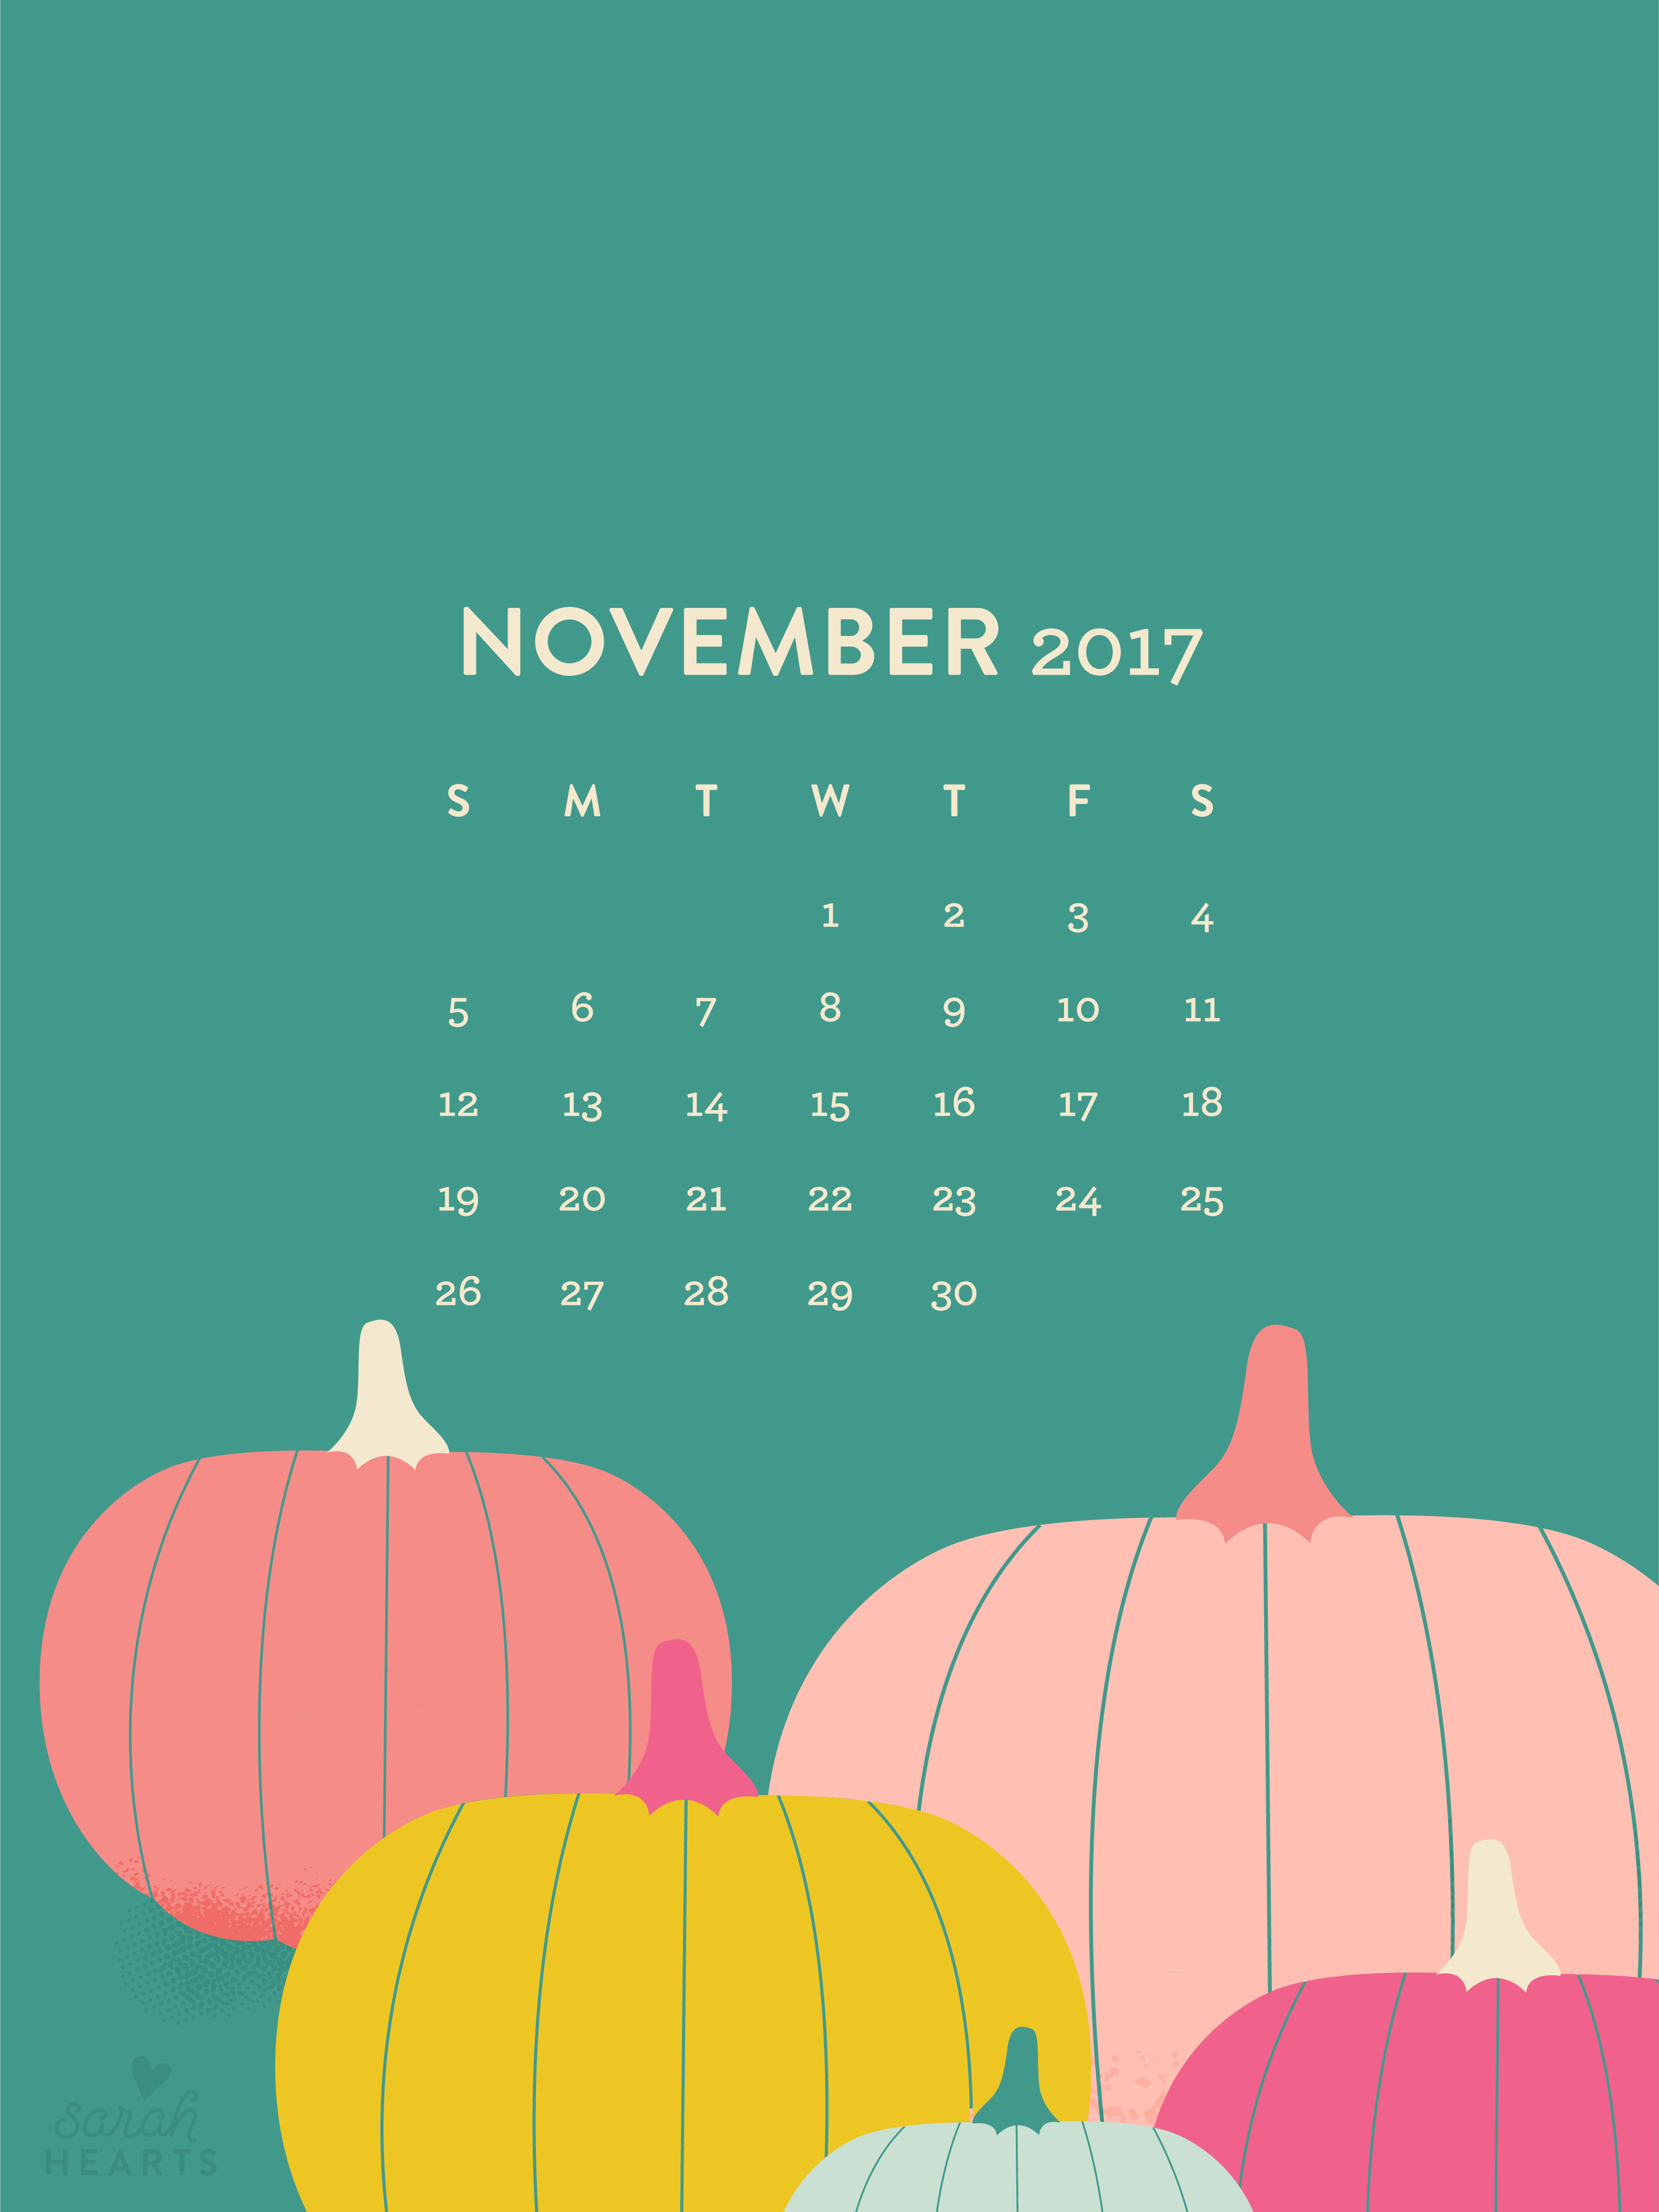 Fall Pumpkin Iphone Wallpaper November 2017 Pumpkin Calendar Wallpaper Sarah Hearts